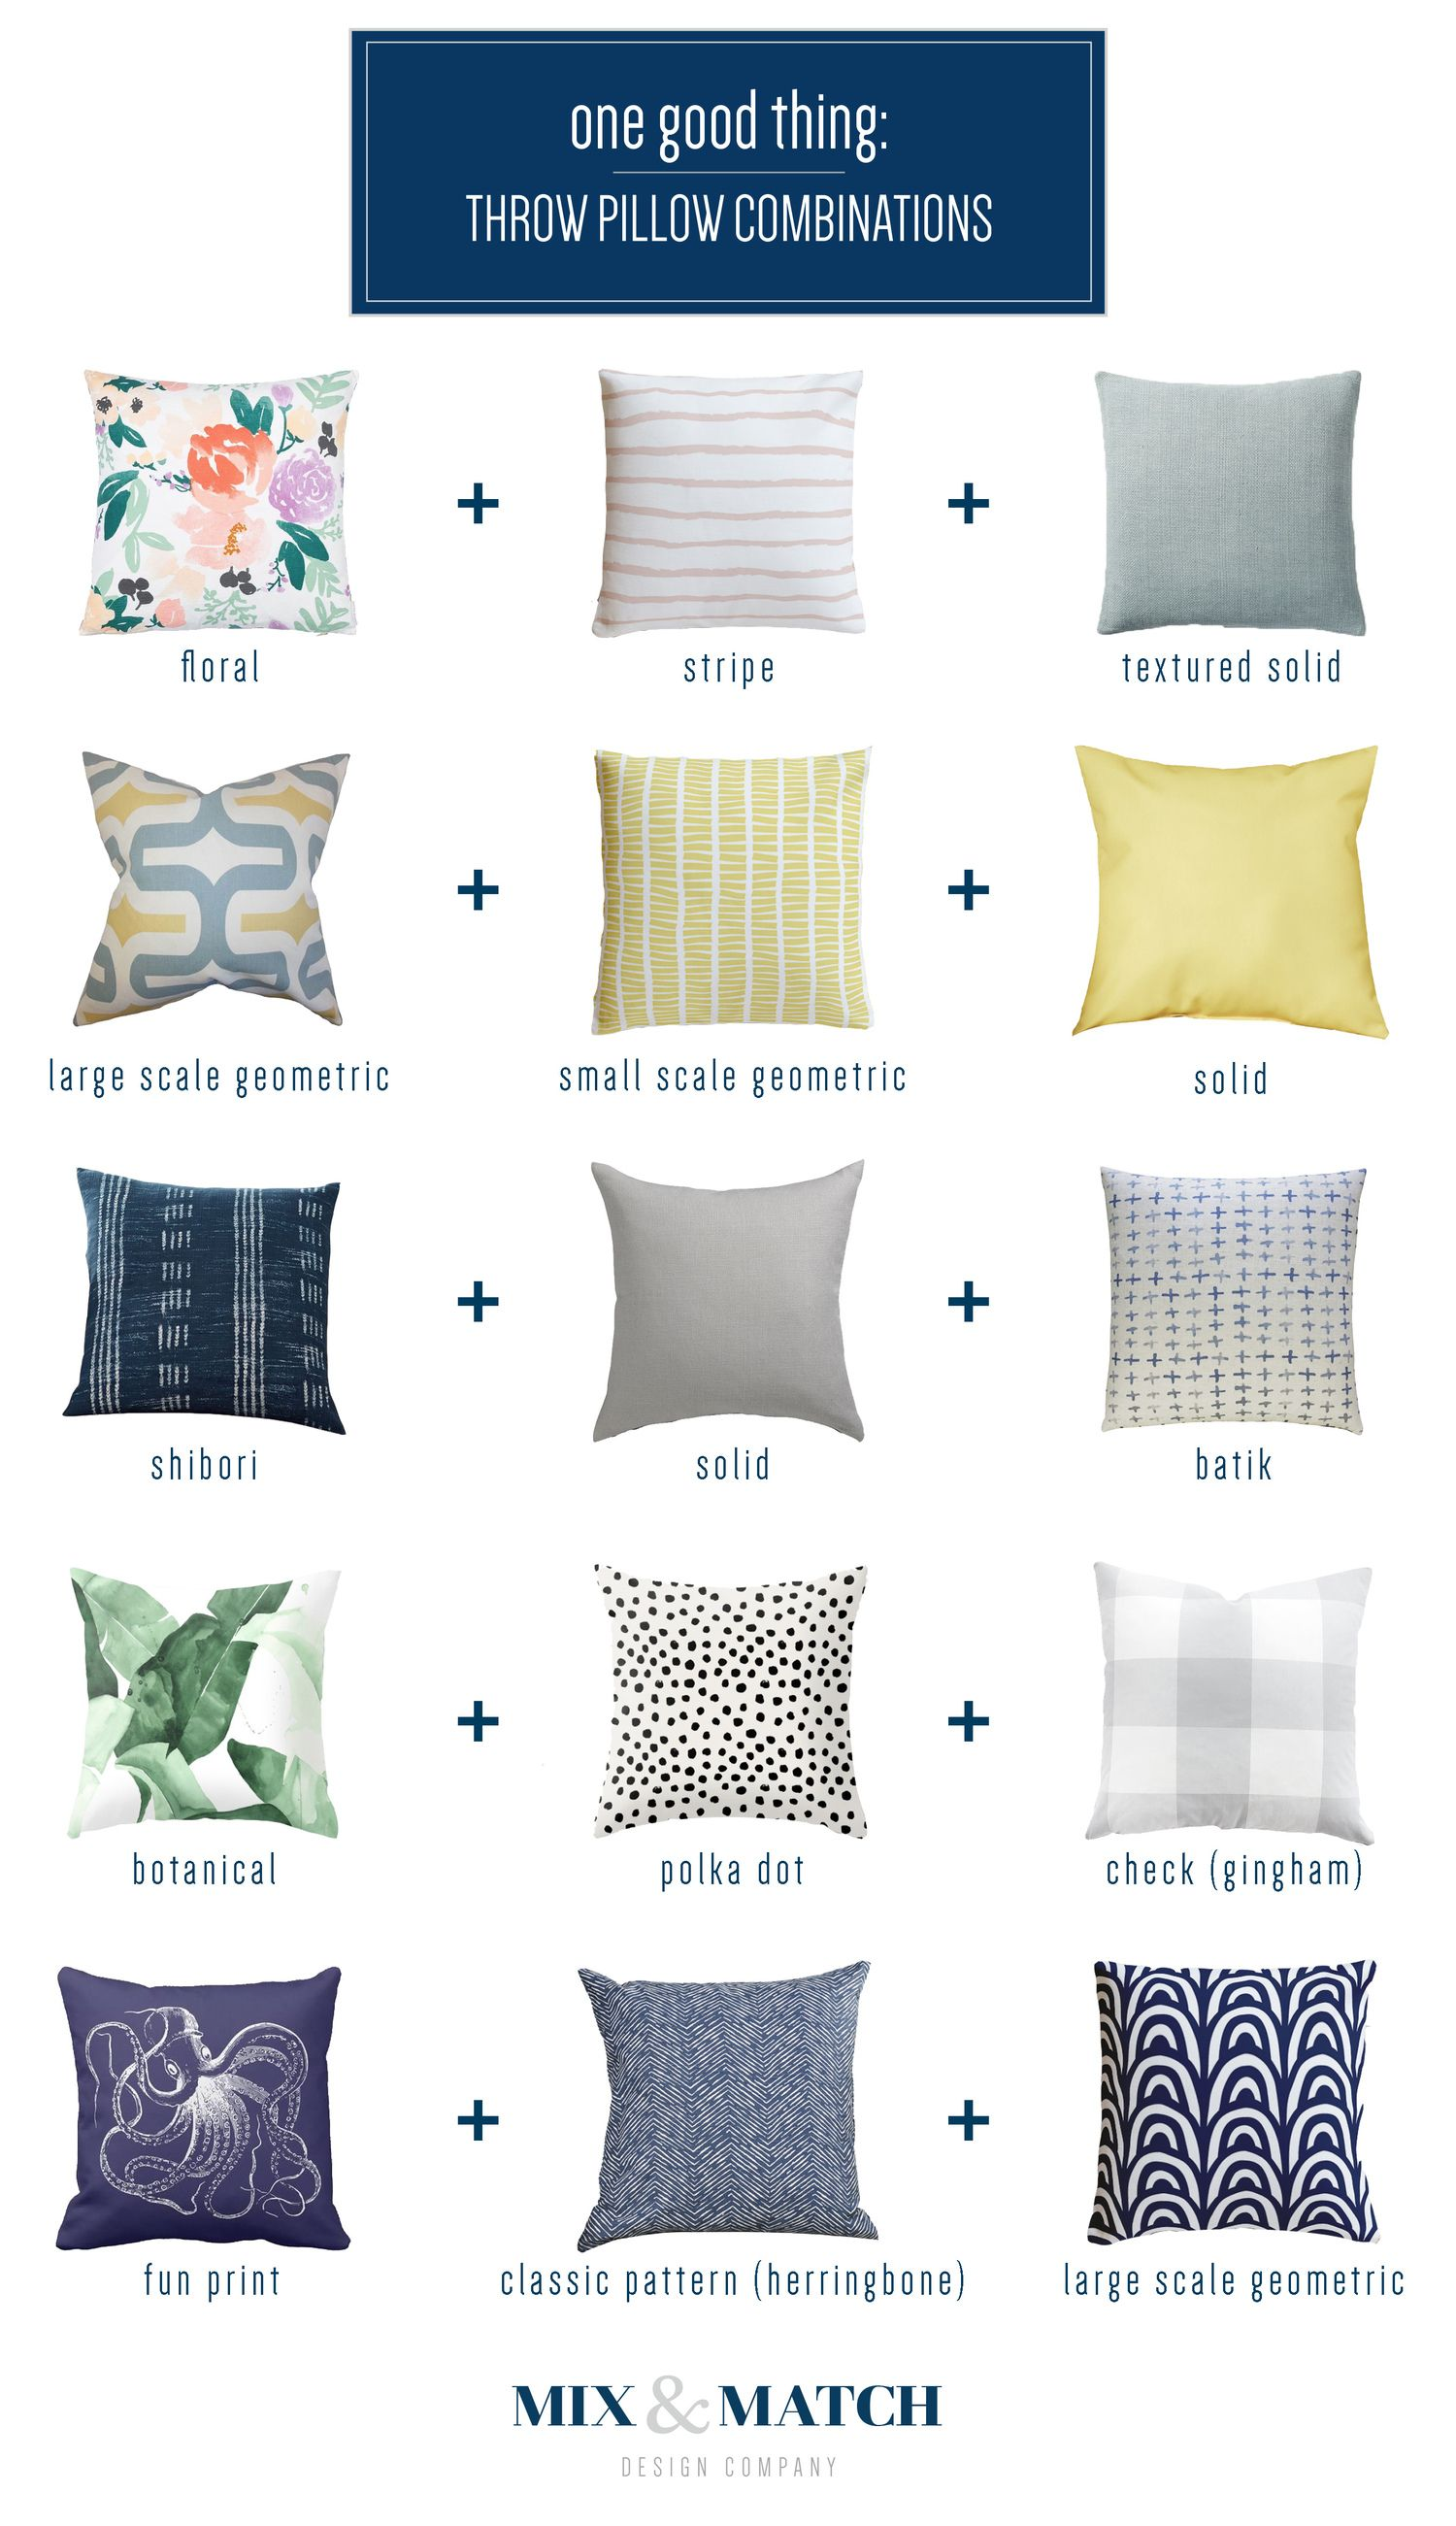 How To Mix And Match Throw Pillow Fabrics And Styles Throw Pillow Combinations Throw Pillows Throw Pillows Living Room